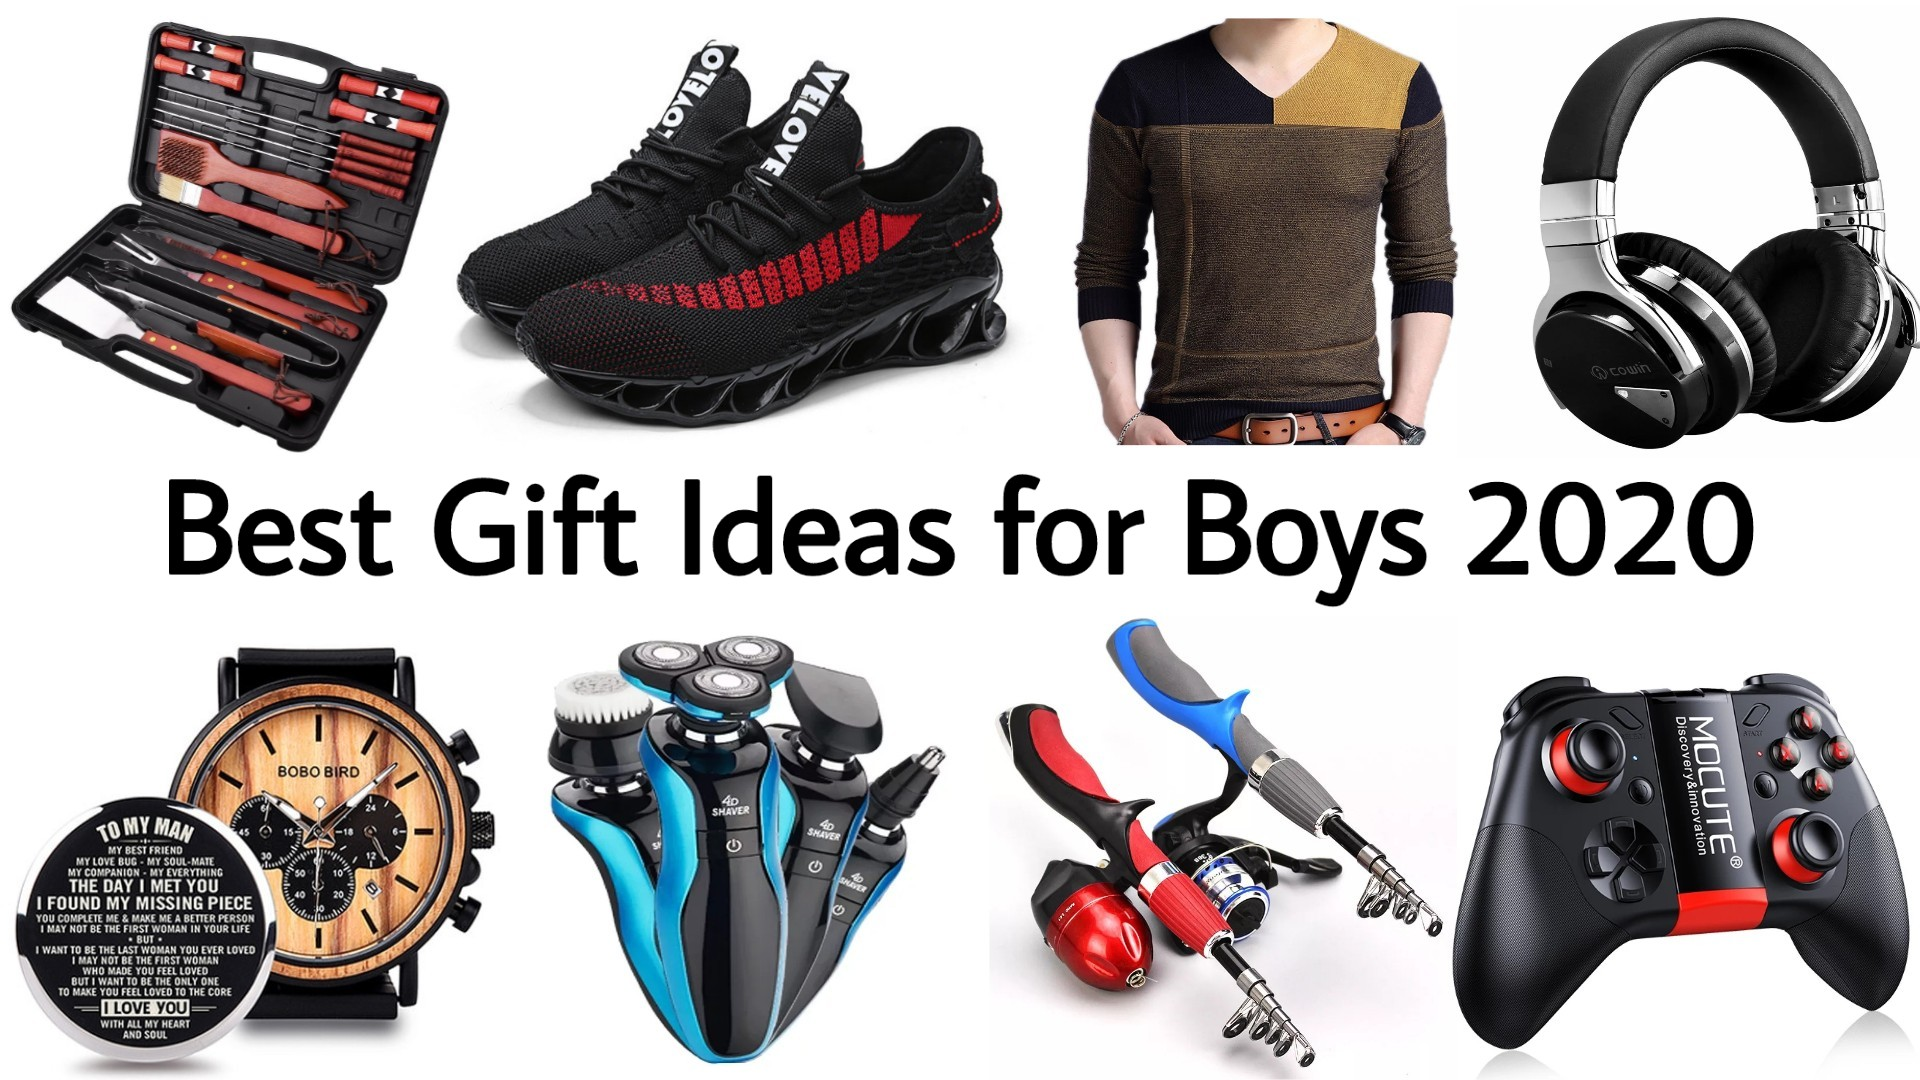 Top Christmas Presents 2020 Best Christmas Gifts For Boyfriend 2020 | Birthday Gift Ideas for